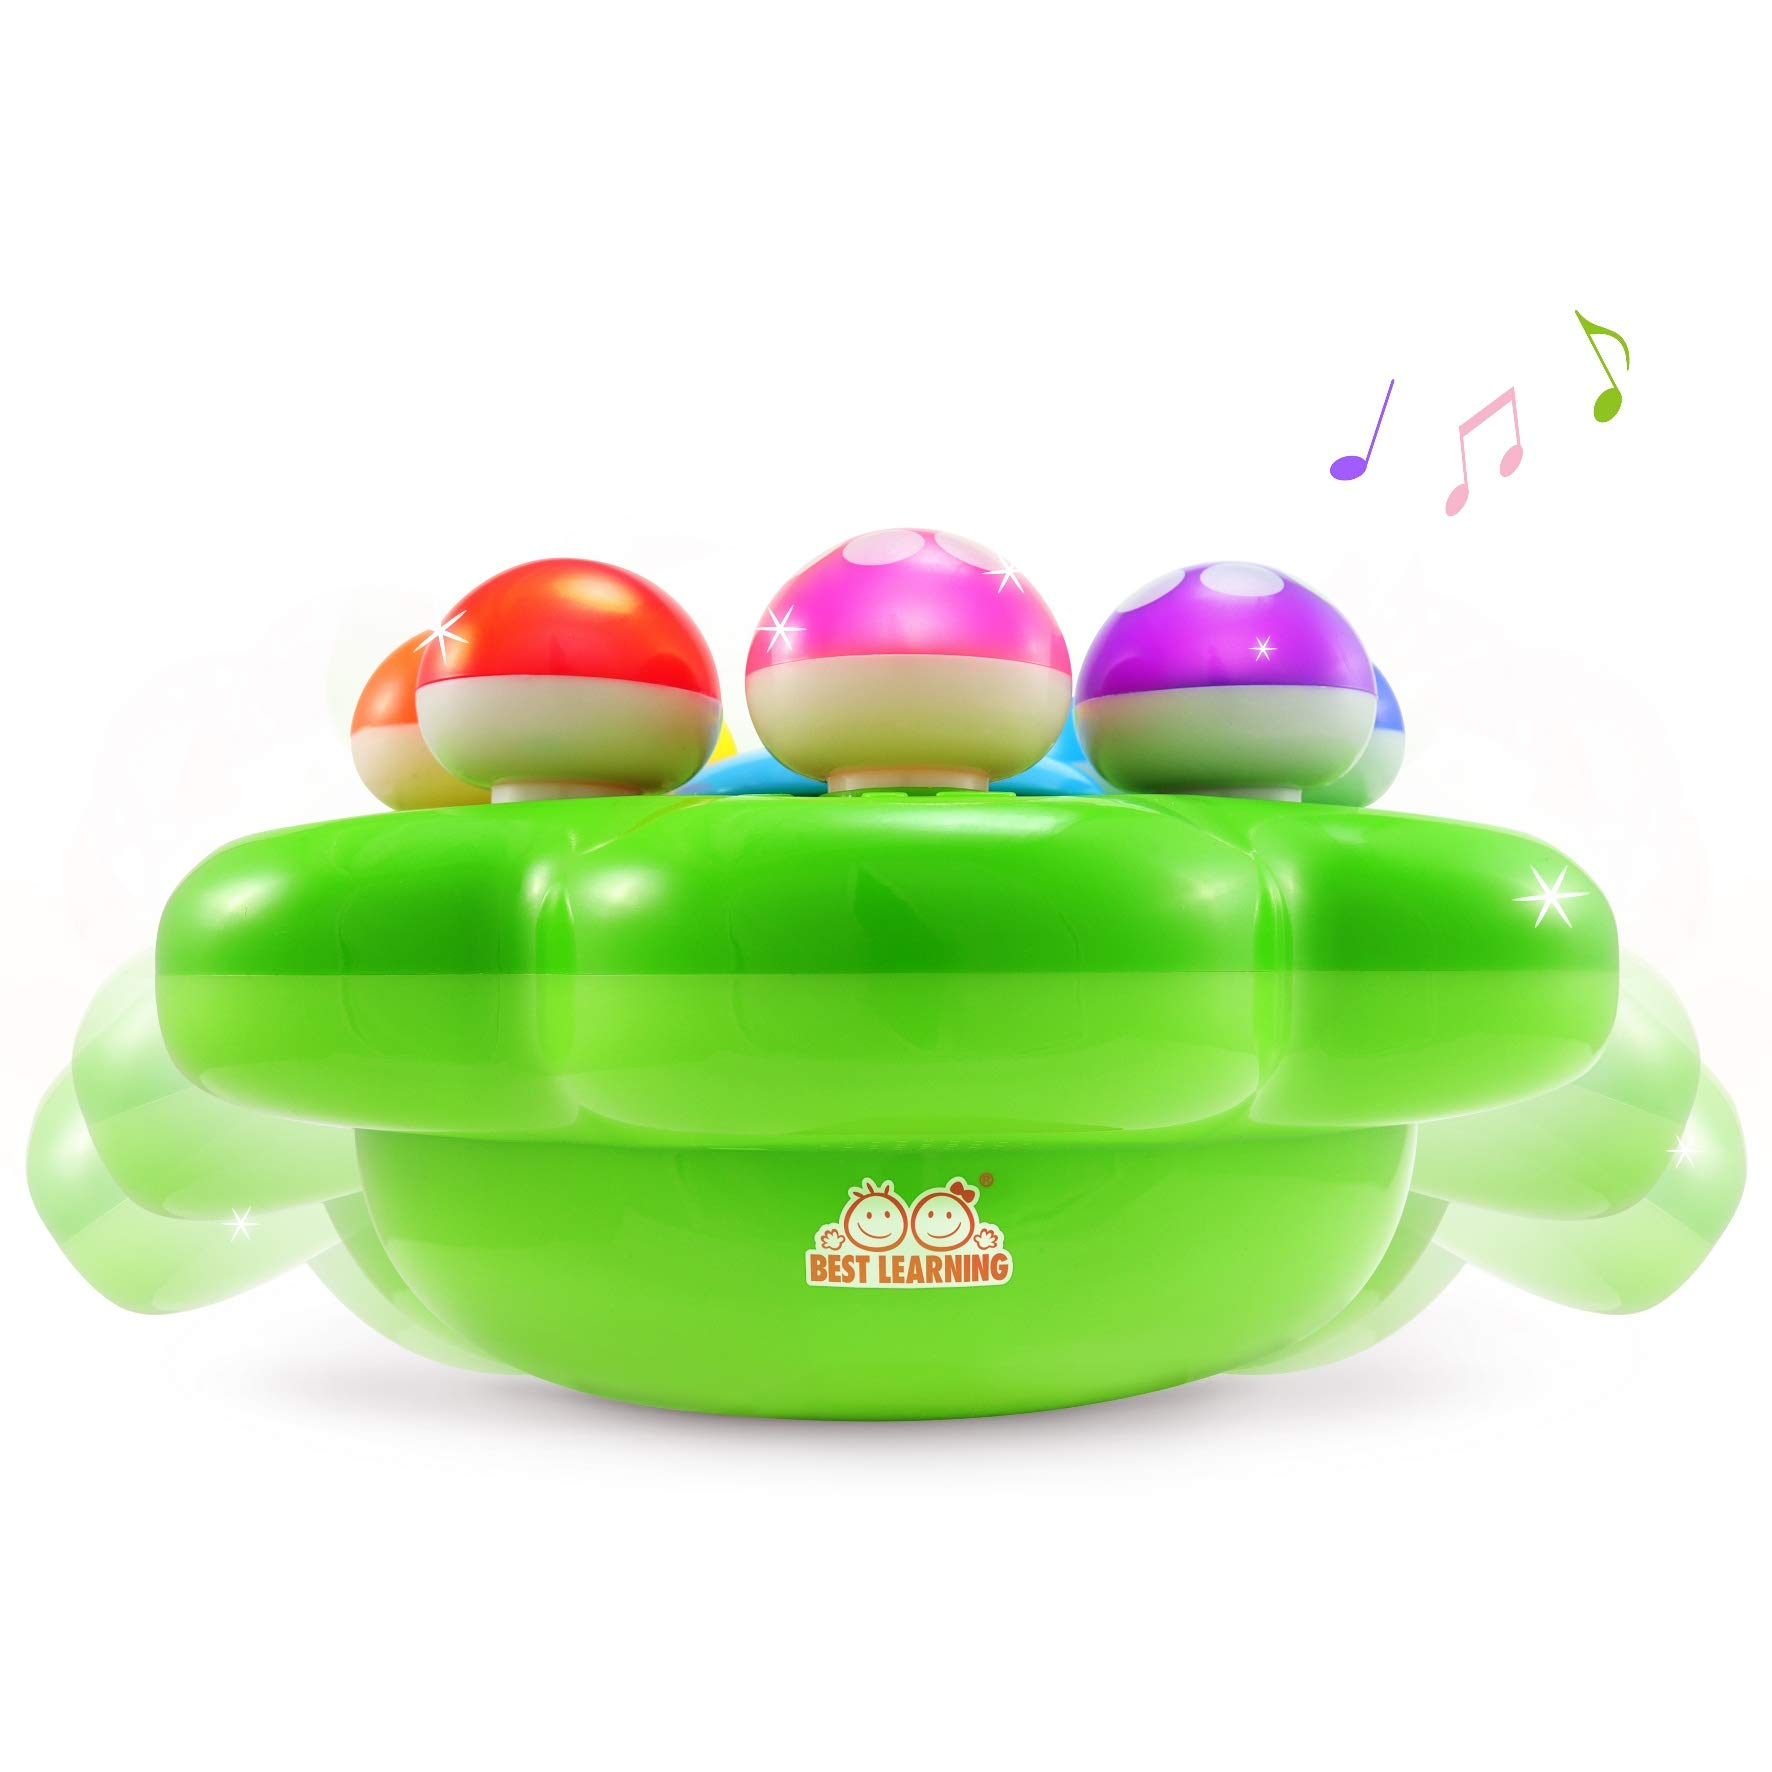 BEST LEARNING Mushroom Garden - Interactive Educational Light-Up Toddler Toys for 1 to 3 Years Old Infants & Toddlers - Colors, Numbers, Games & Music for Kids by BEST LEARNING (Image #6)